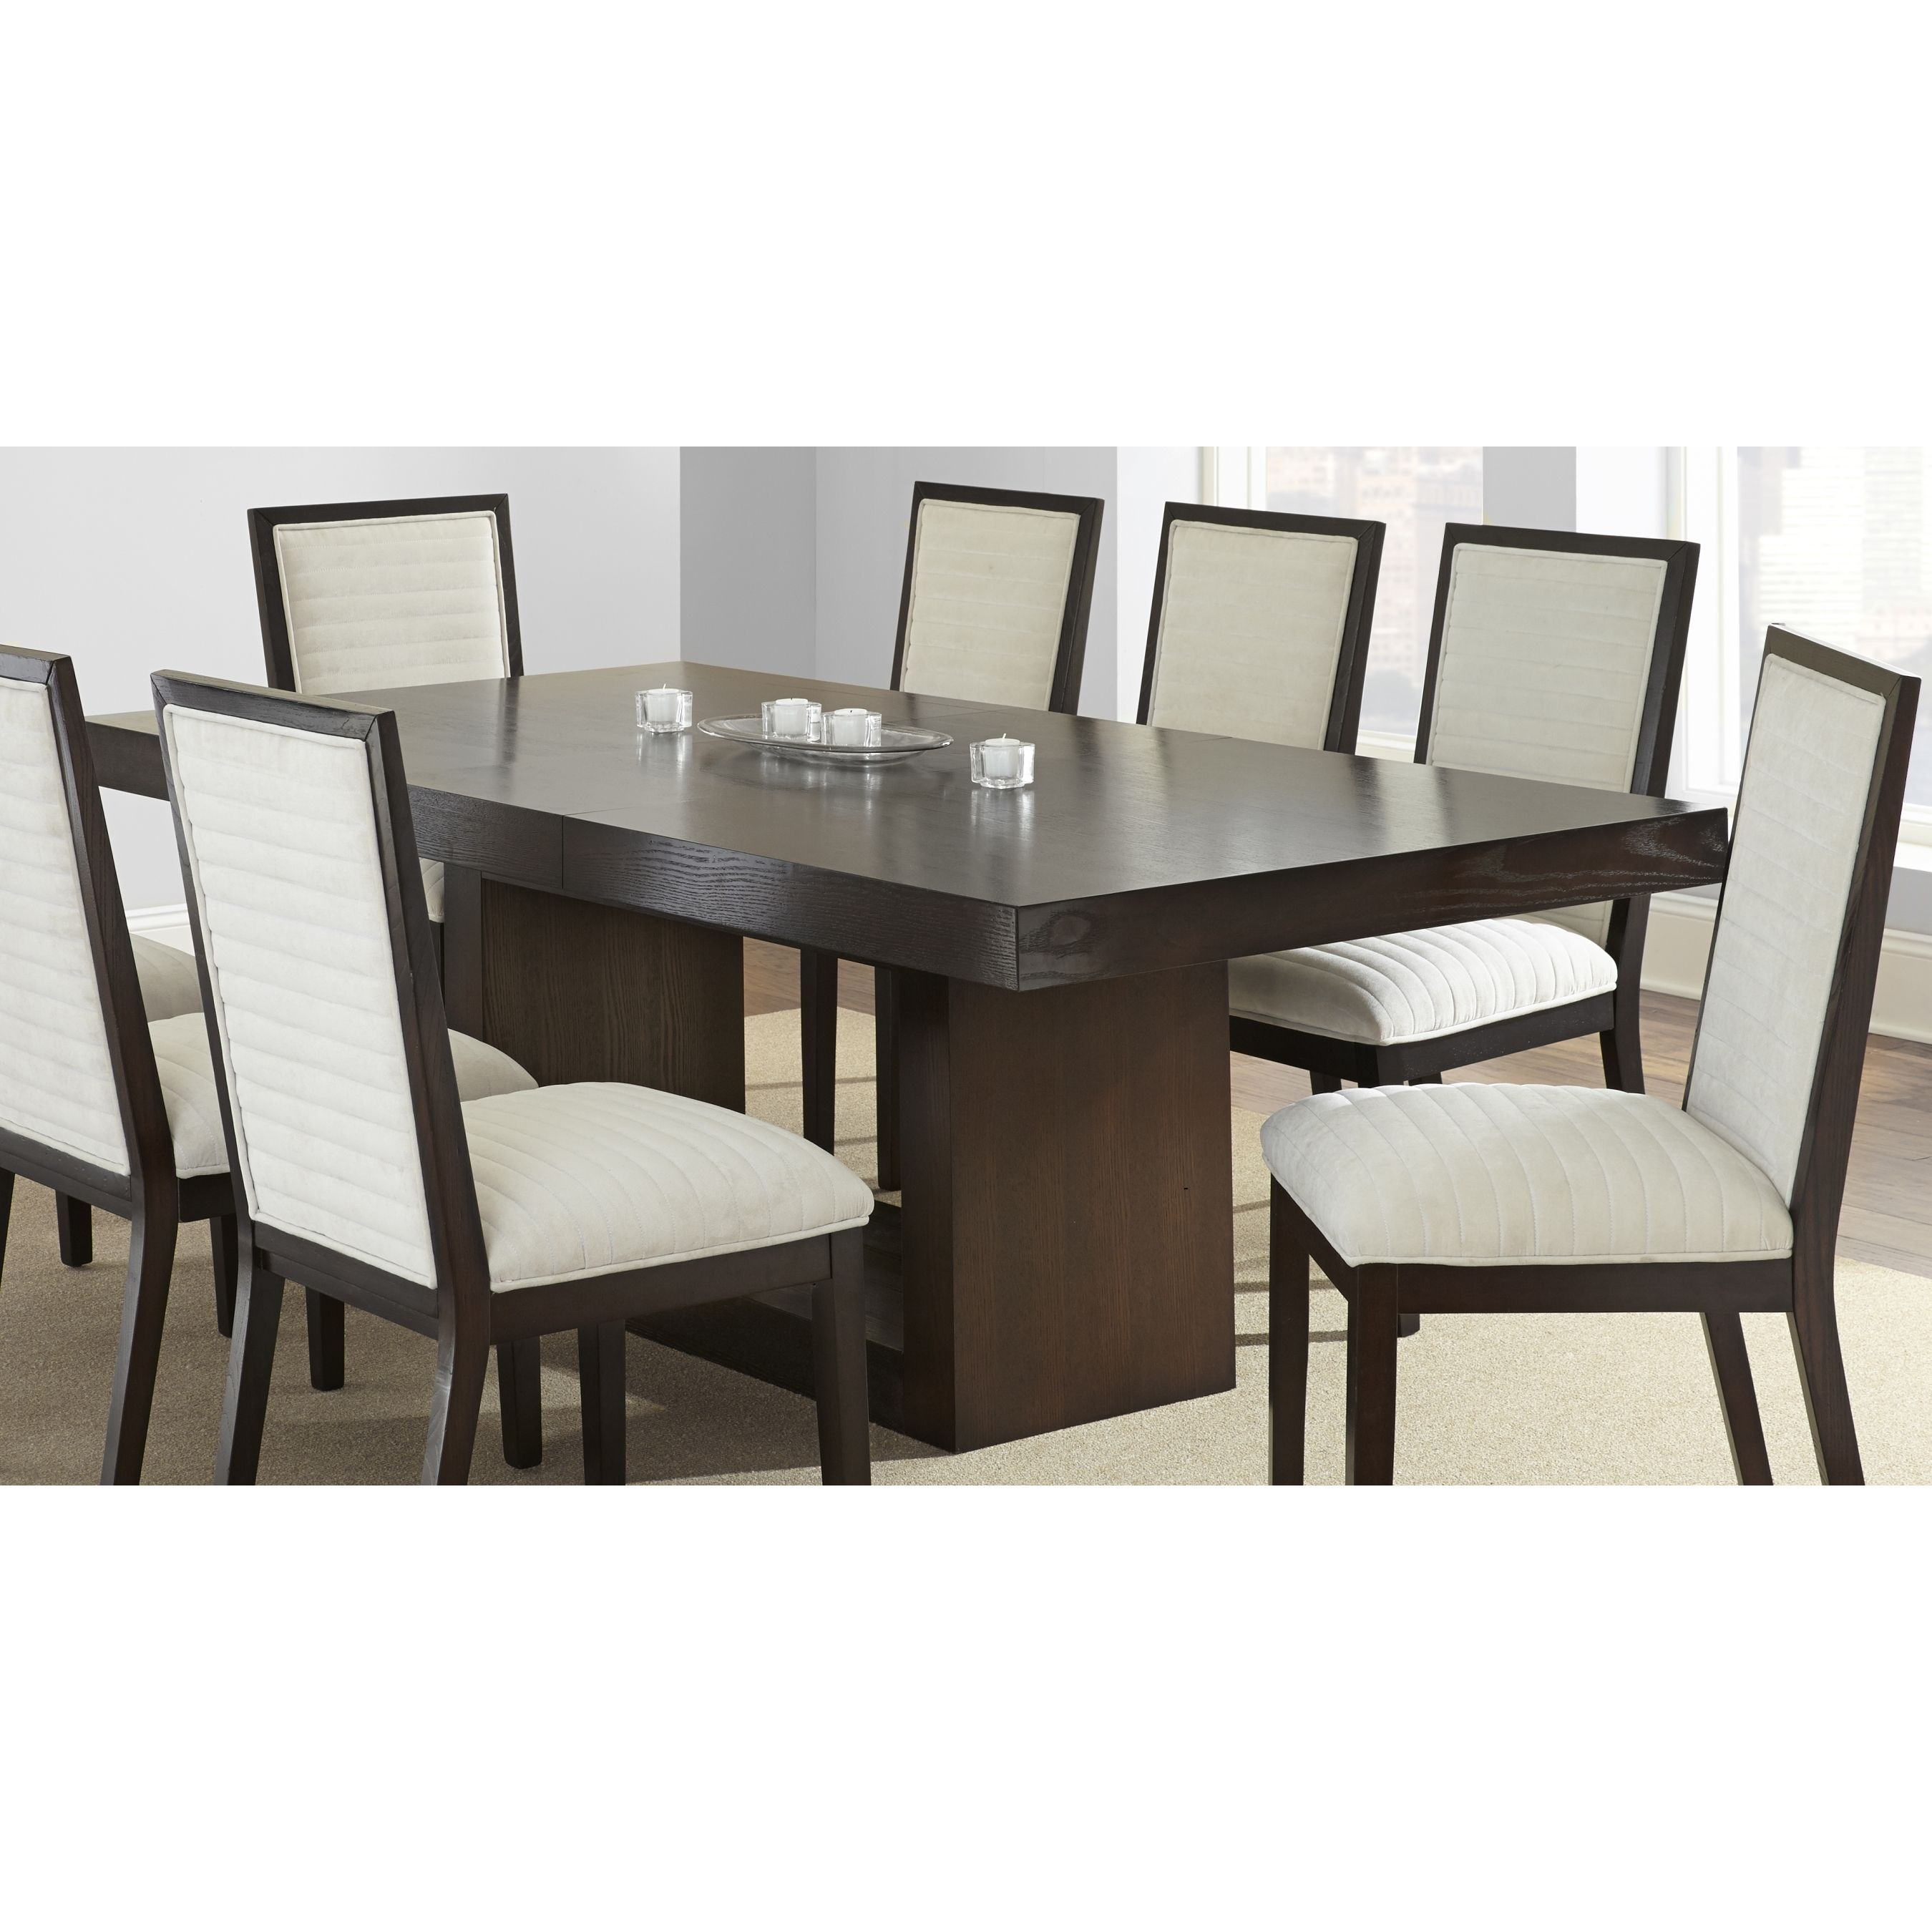 Modern Dining Table With Leaf Greyson Living Amia Espresso Dining Table With Removable